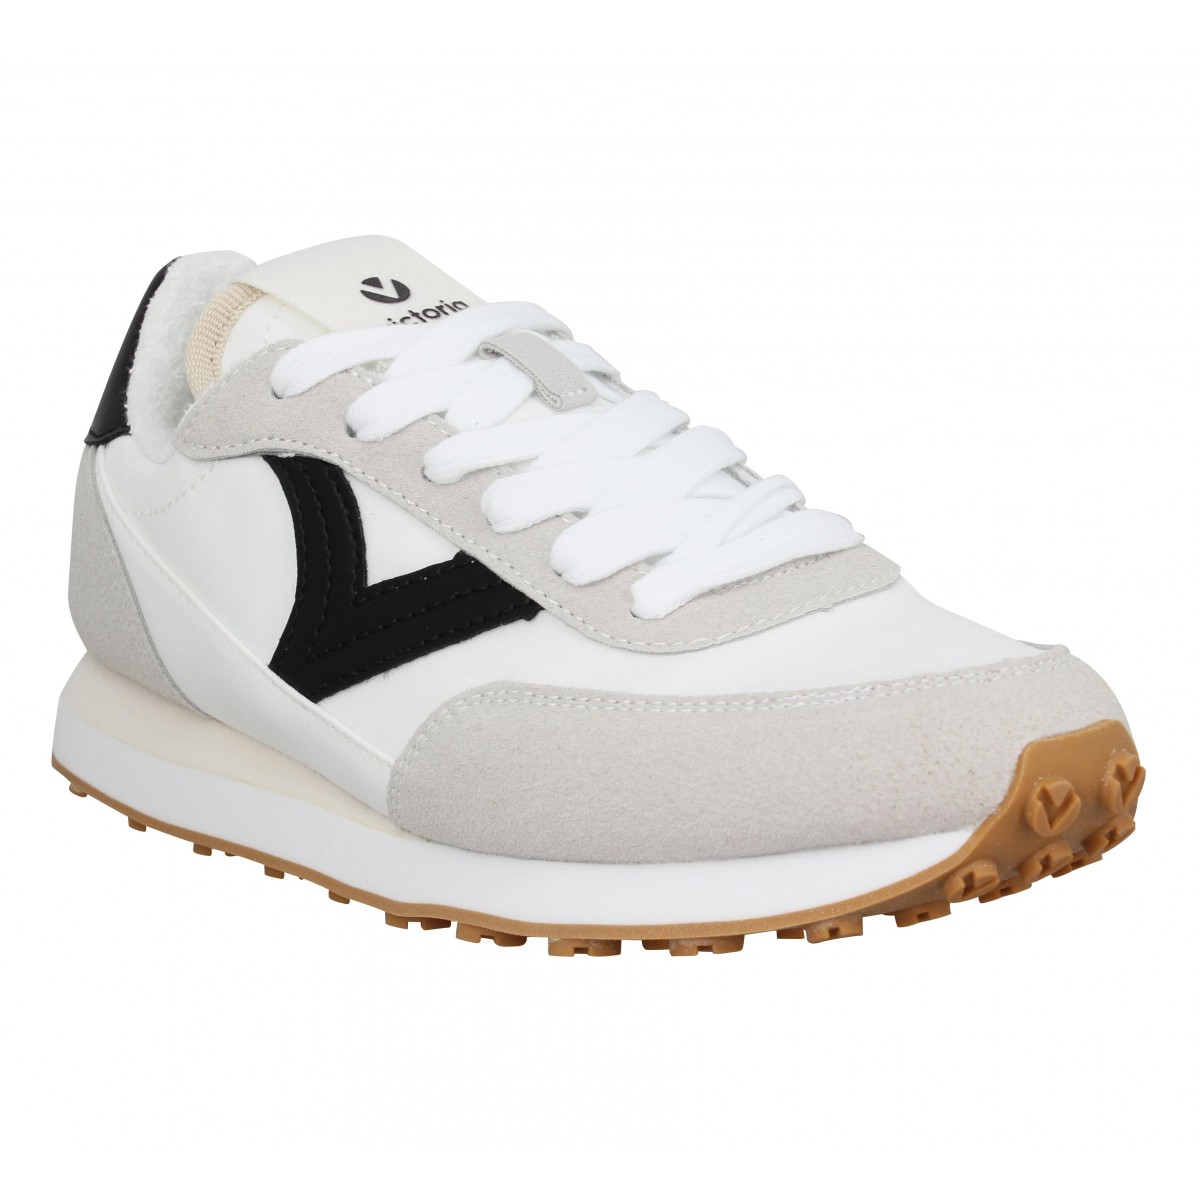 Baskets VICTORIA 38100 run simili Femme Blanc